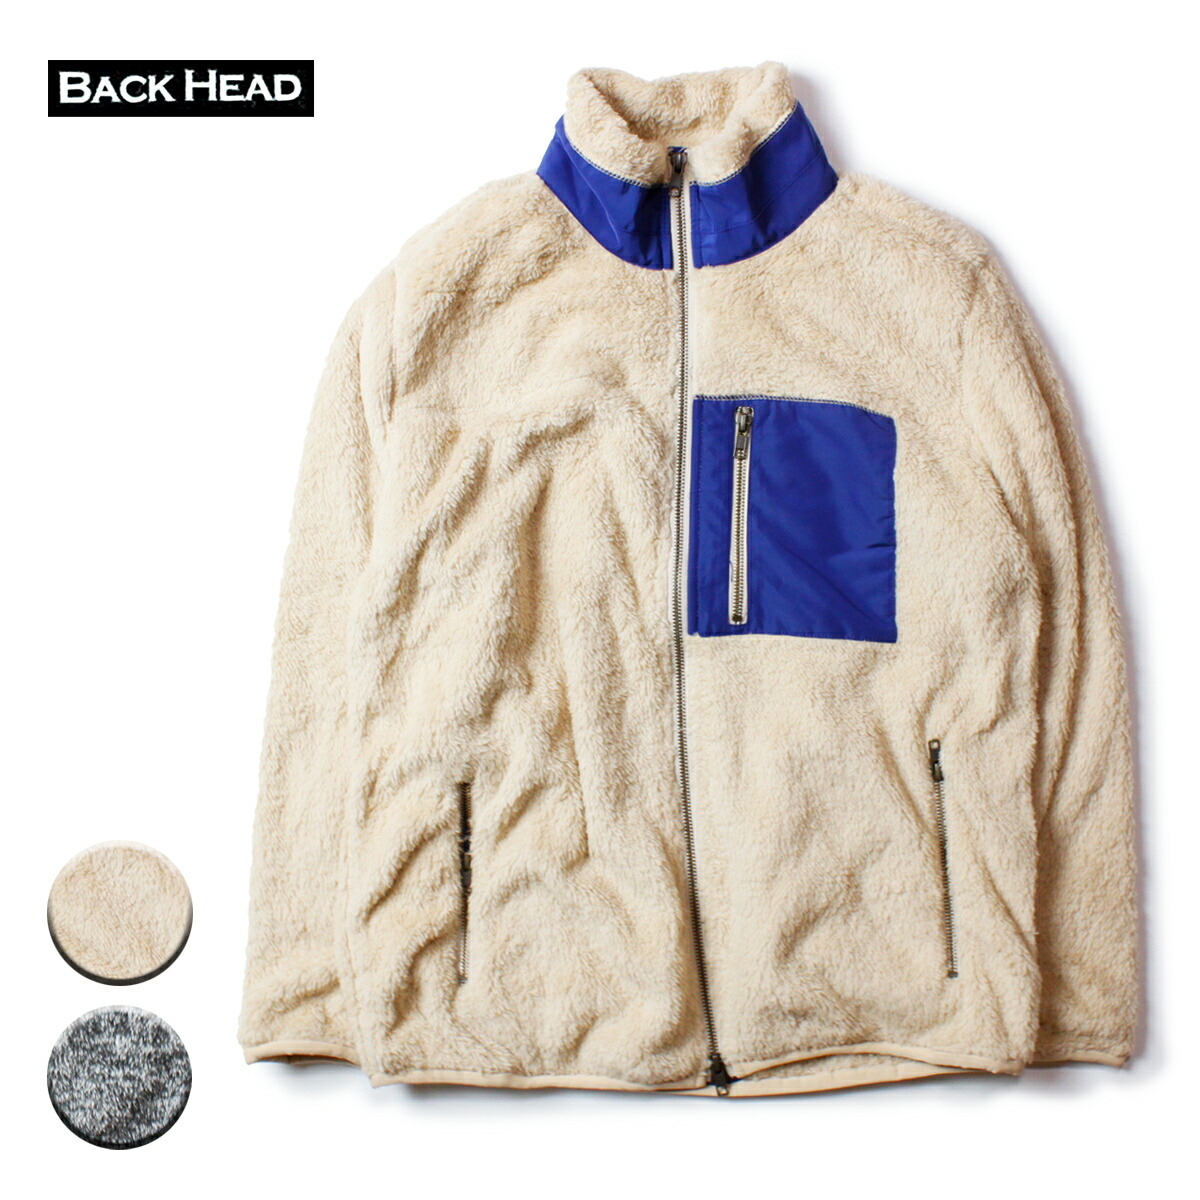 BACK HEAD バックヘッド MOCO MOCO KNIT JACKET